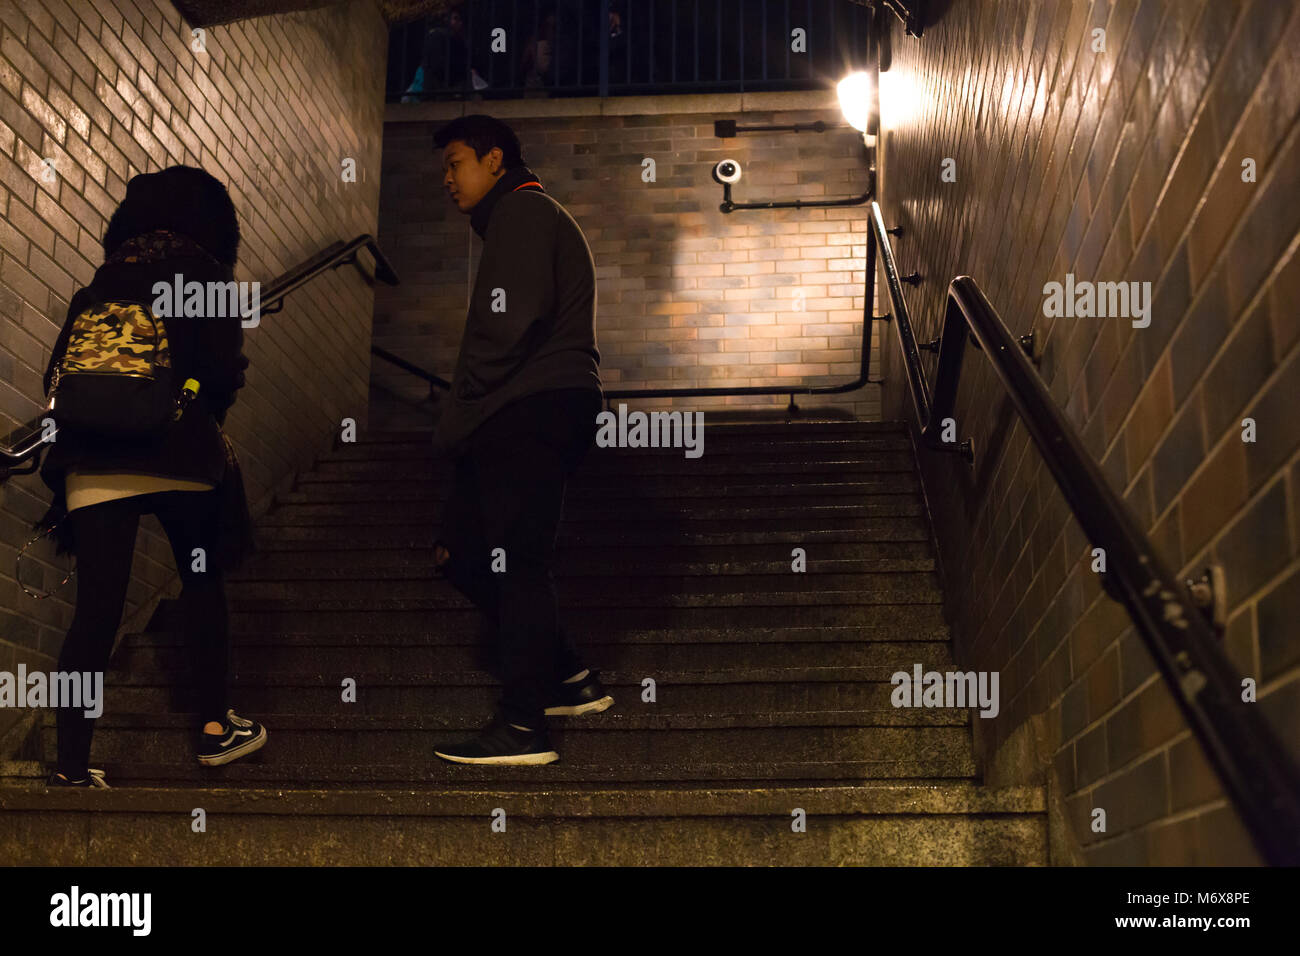 A man and a woman in a brick stairwell at night with some tension between them. - Stock Image